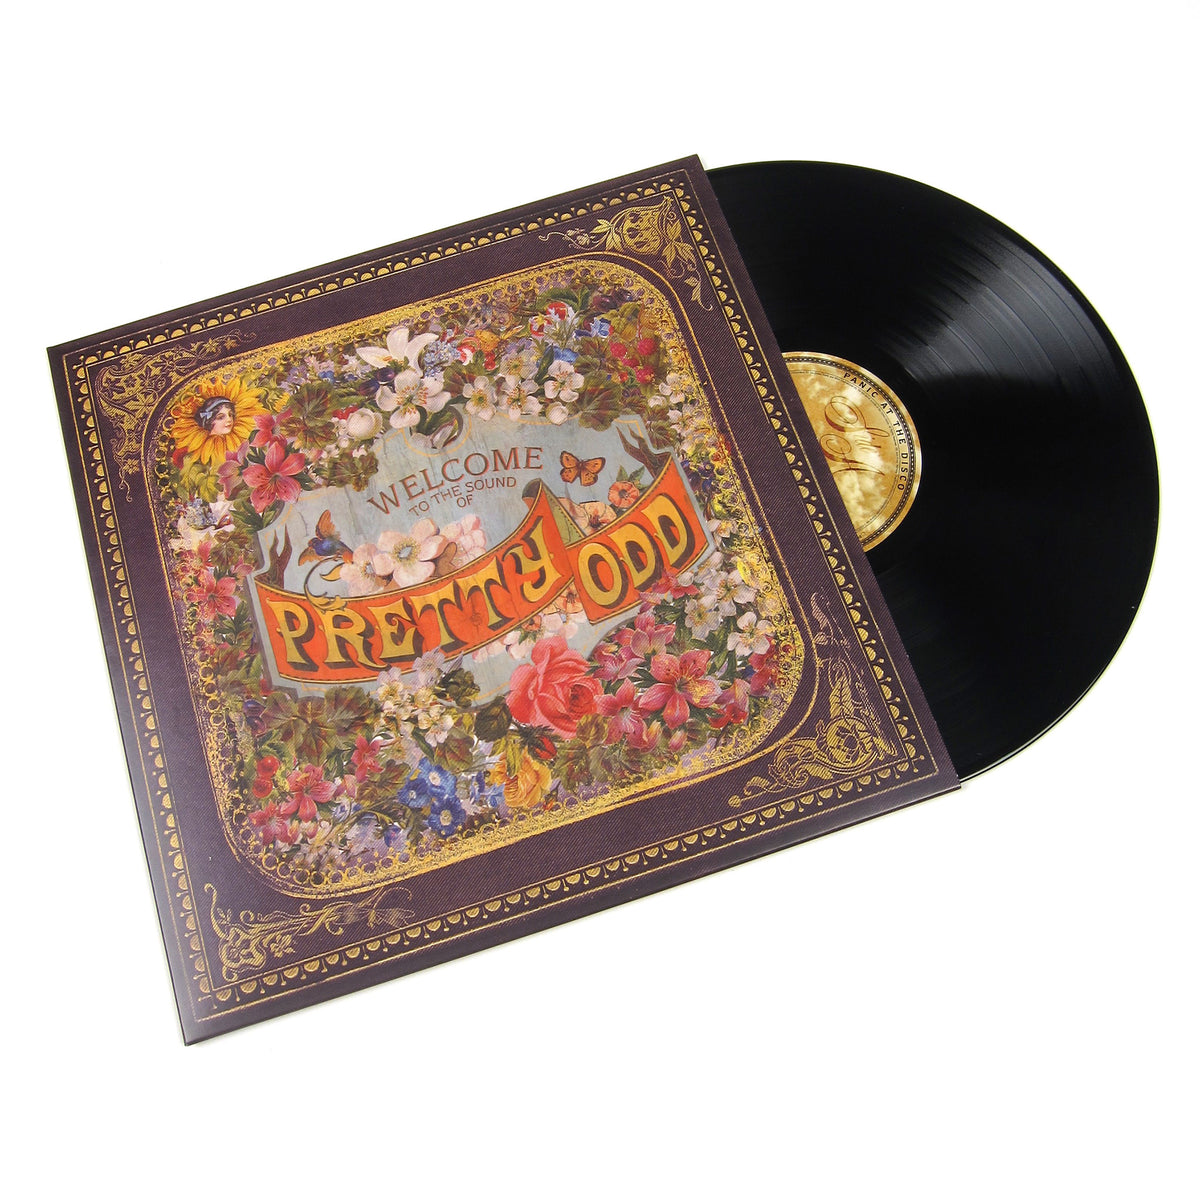 Panic! At The Disco: Pretty. Odd Vinyl LP